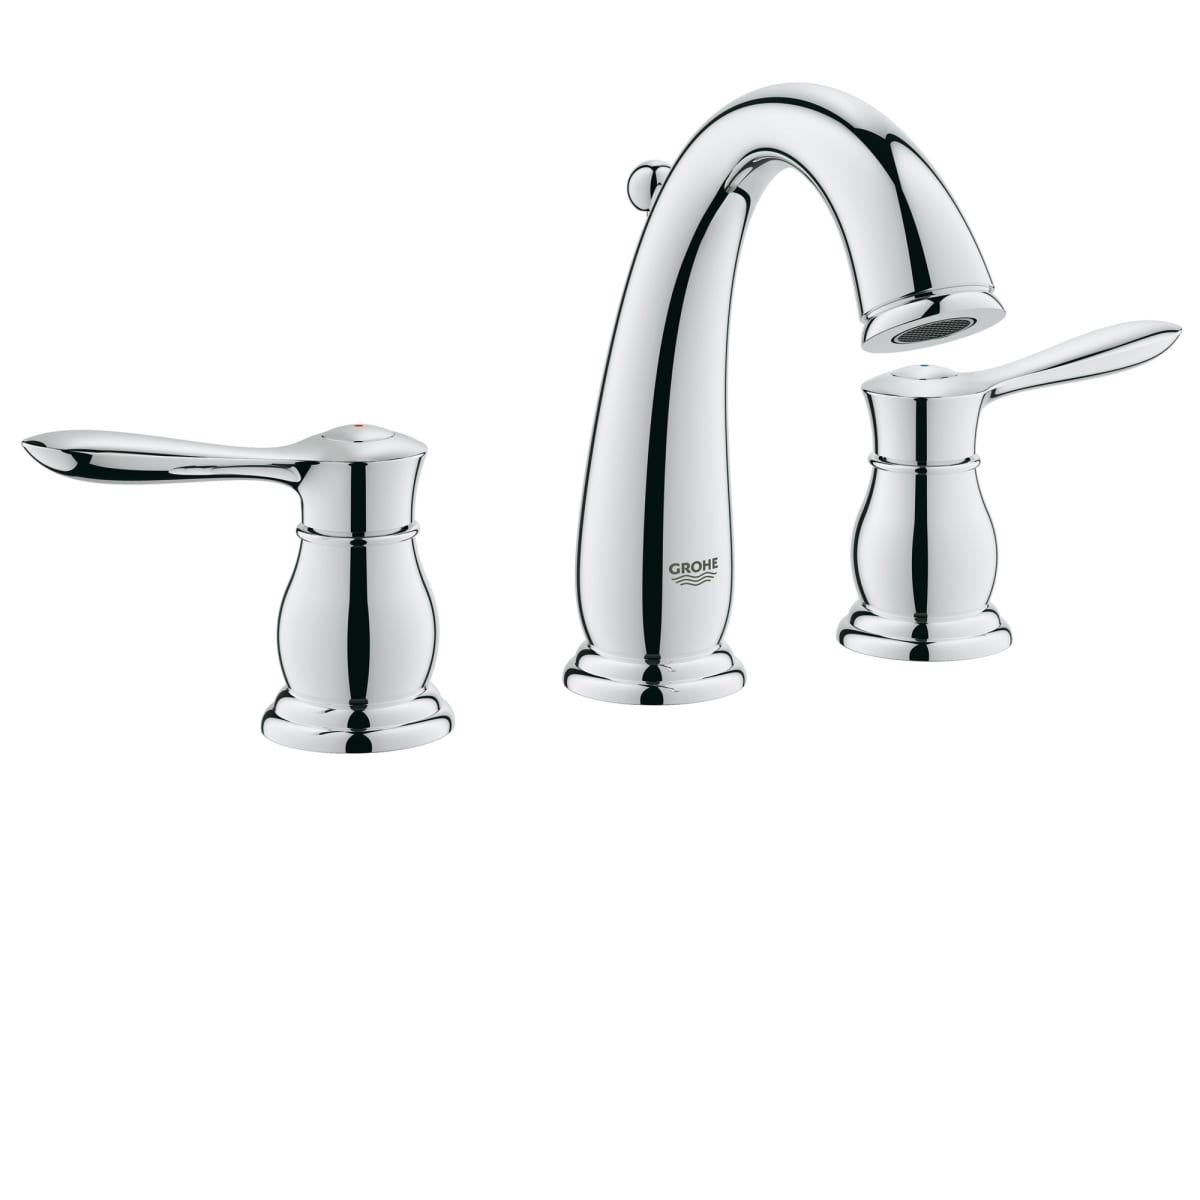 Grohe 2039000a Starlight Chrome Parkfield 1 2 Gpm Widespread Bathroom Faucet With Silkmove And Quickfix Technologies Free Metal Pop Up Drain Embly